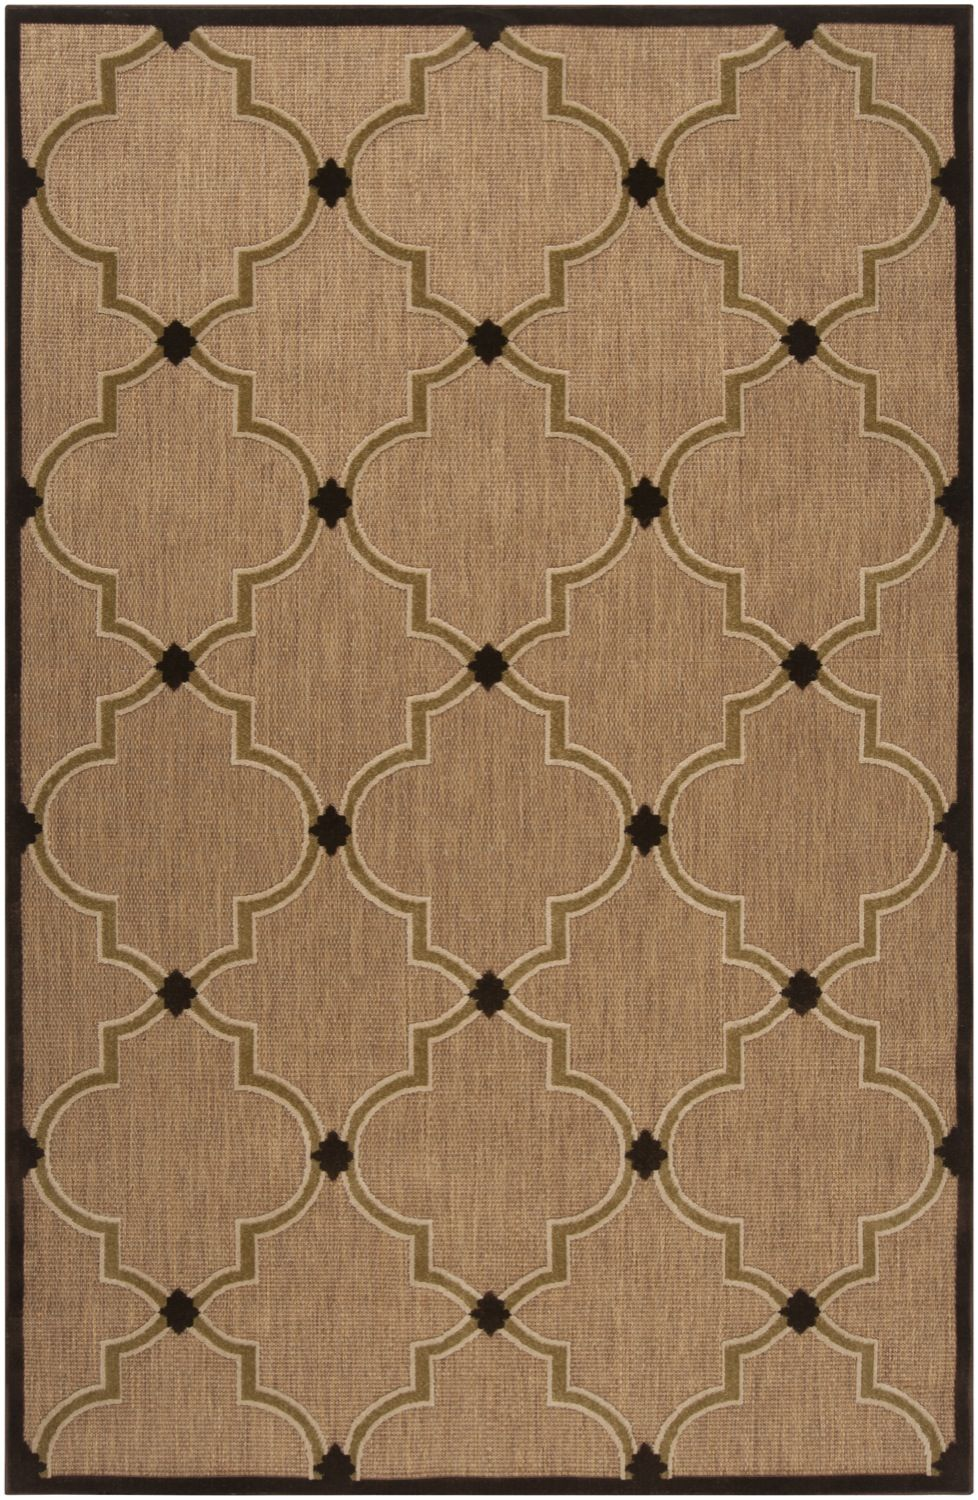 Indoor Outdoor Portera Collection Area Rug In Tan Brown